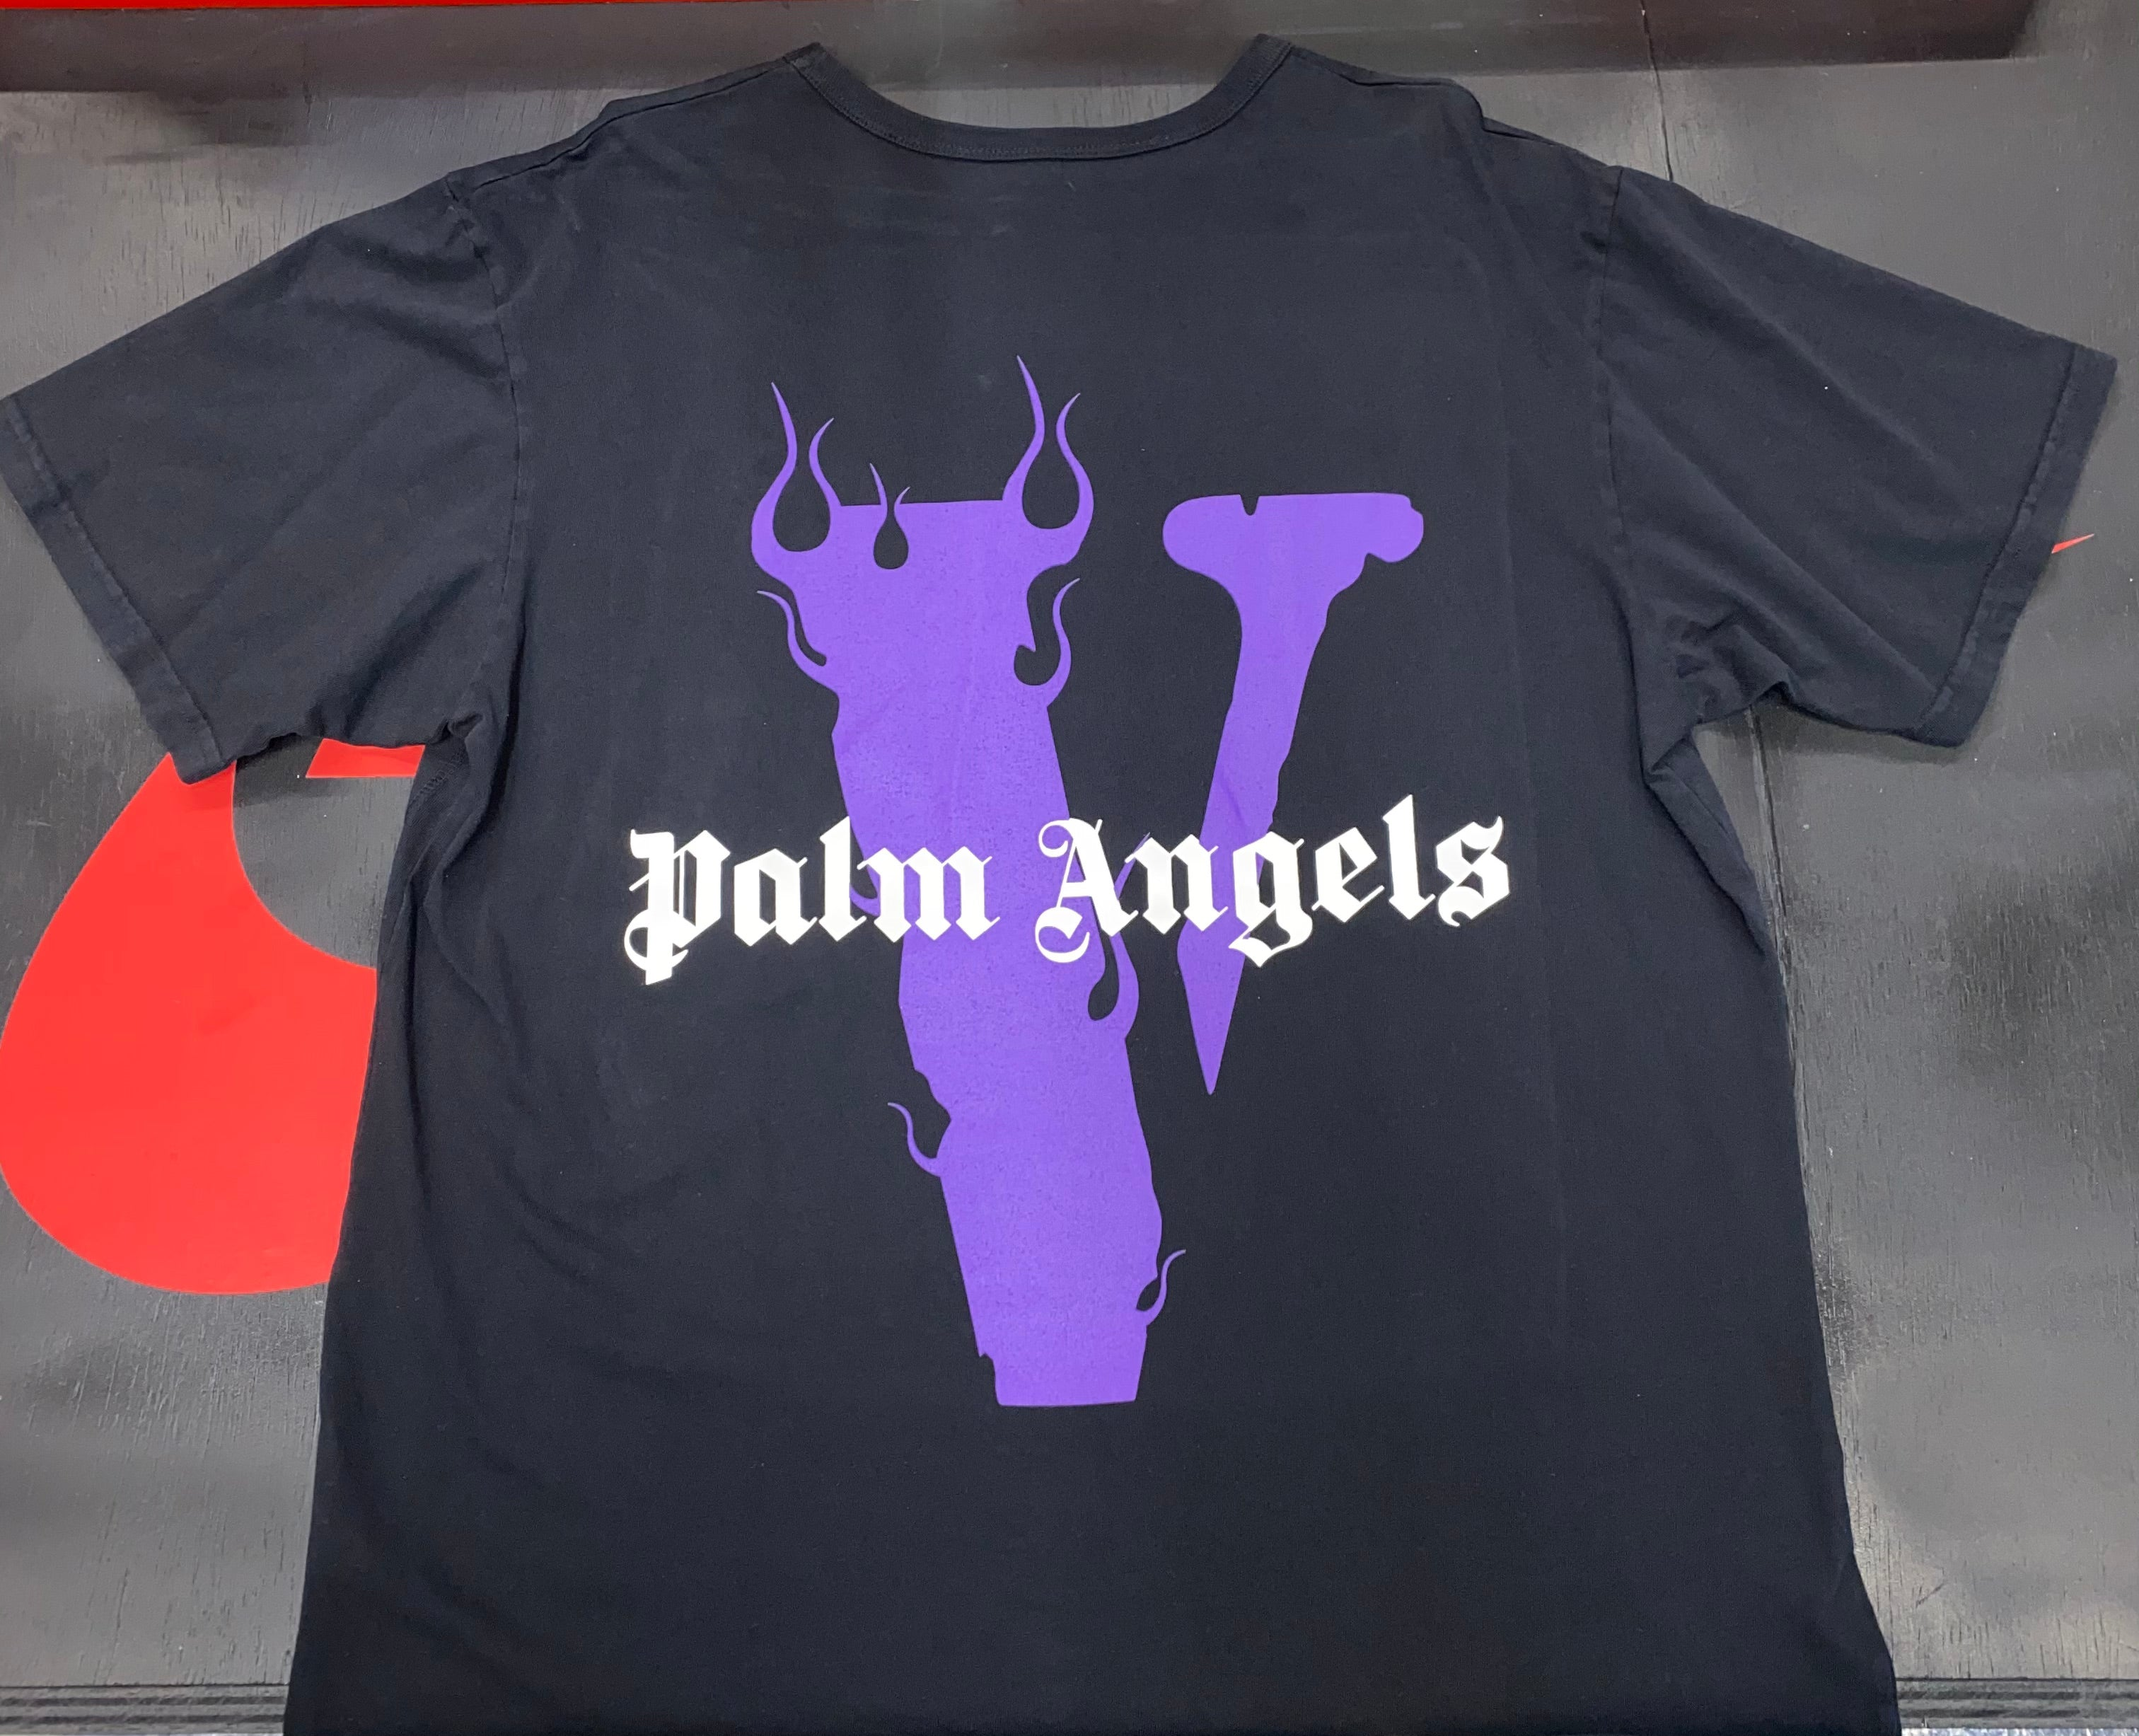 Purple Vlone x Palm Angels Shirt